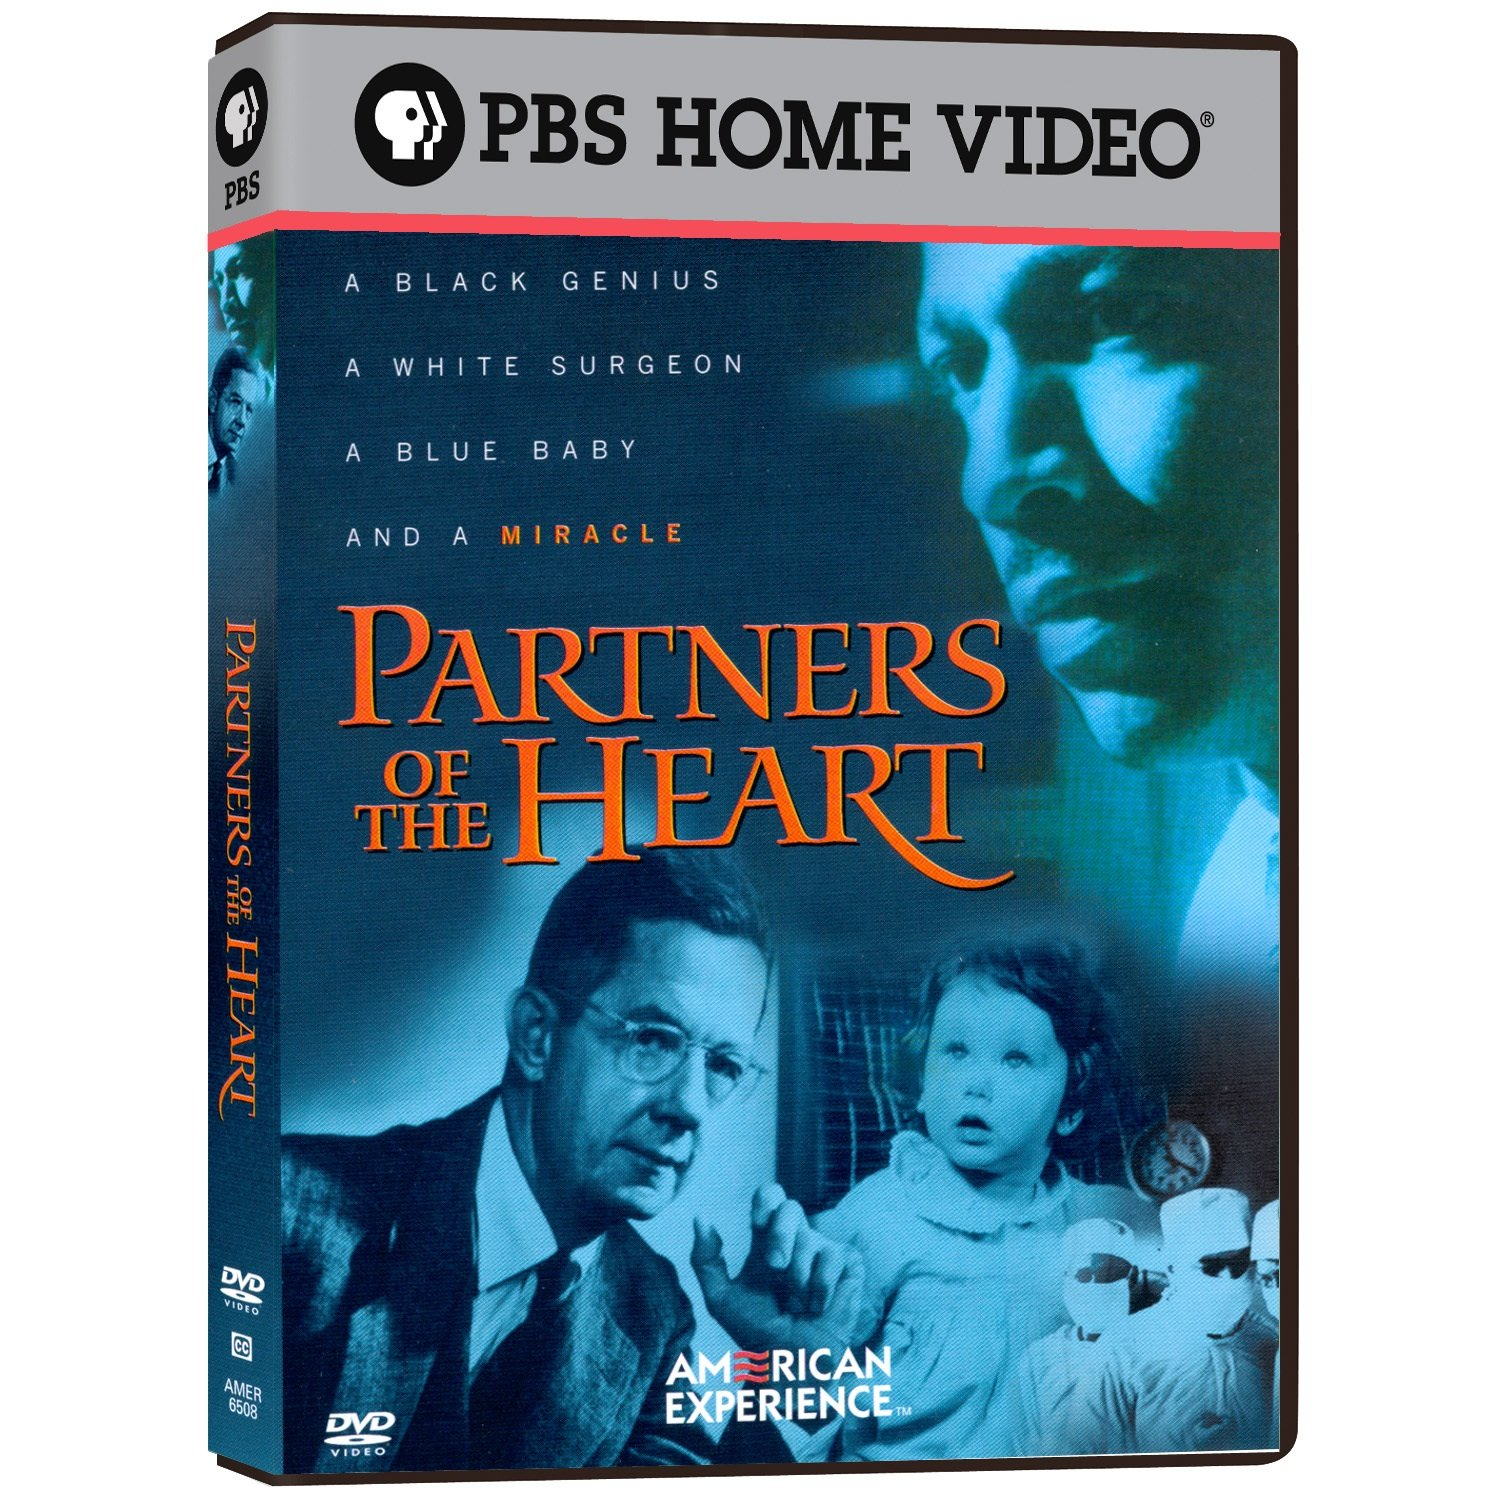 American Experience - Partners Of The Heart